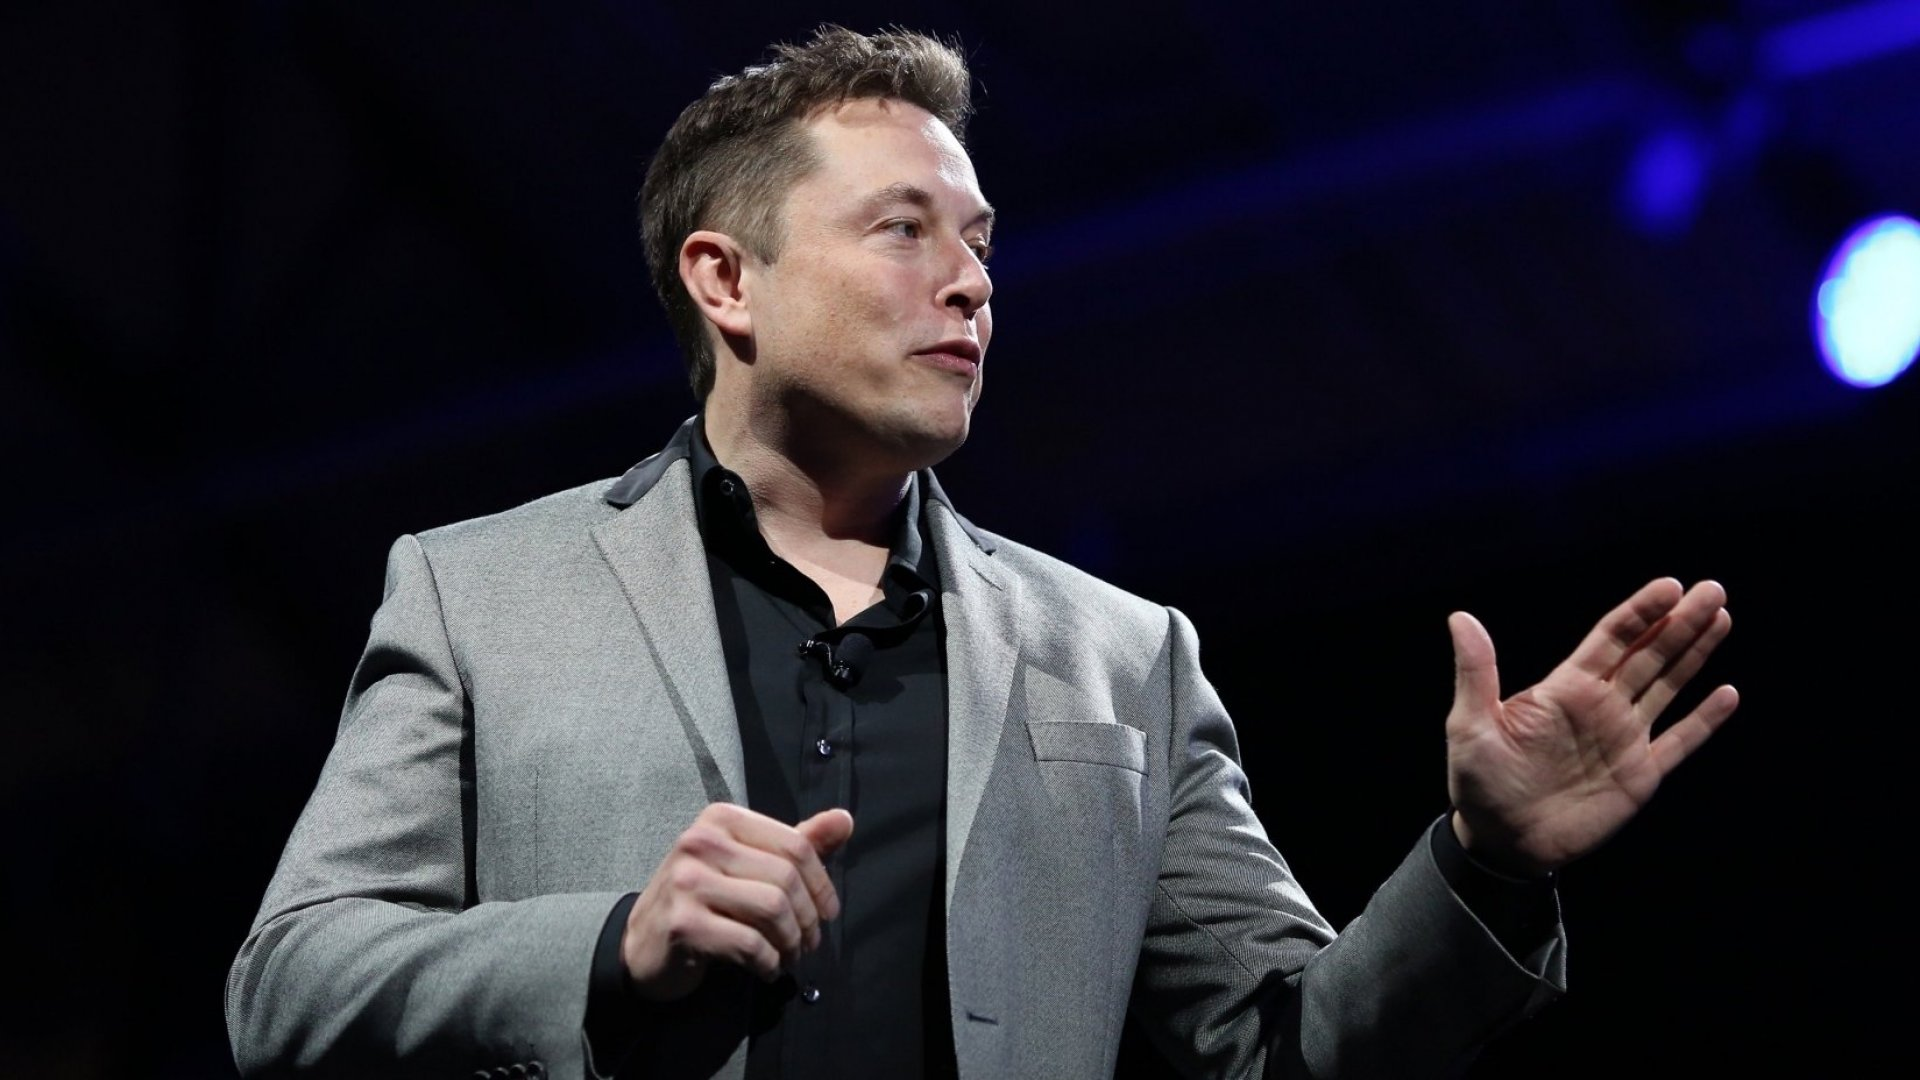 When Elon Musk Is Afraid, This Is How He Handles It